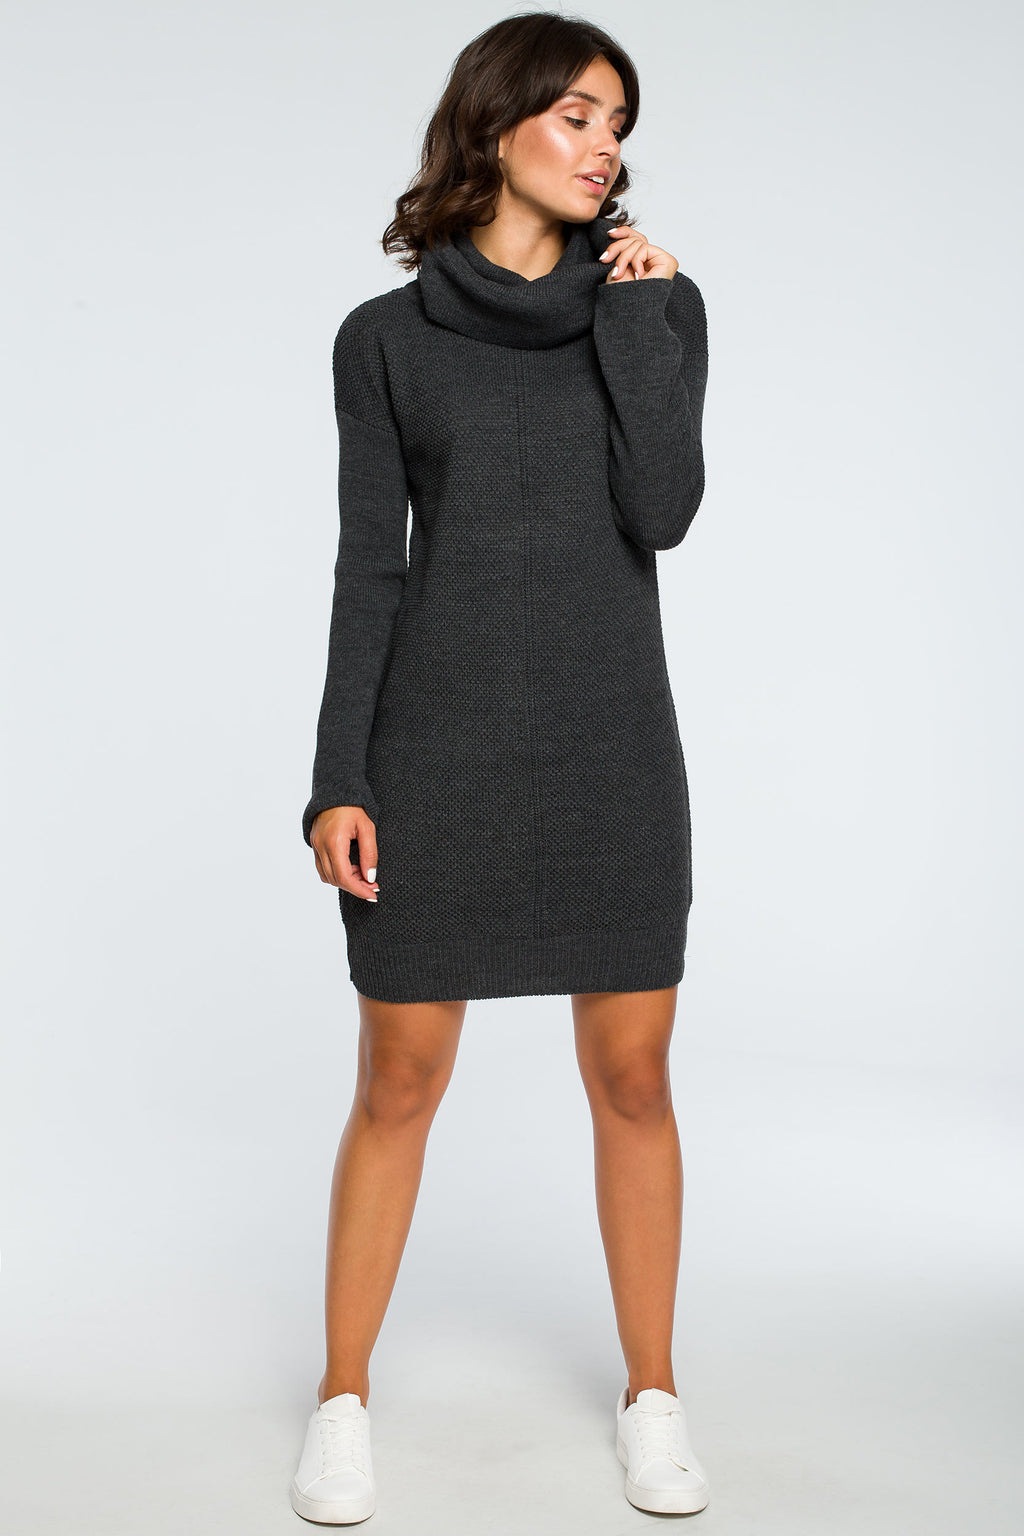 Graphite High Collar Knit Dress - So Chic Boutique